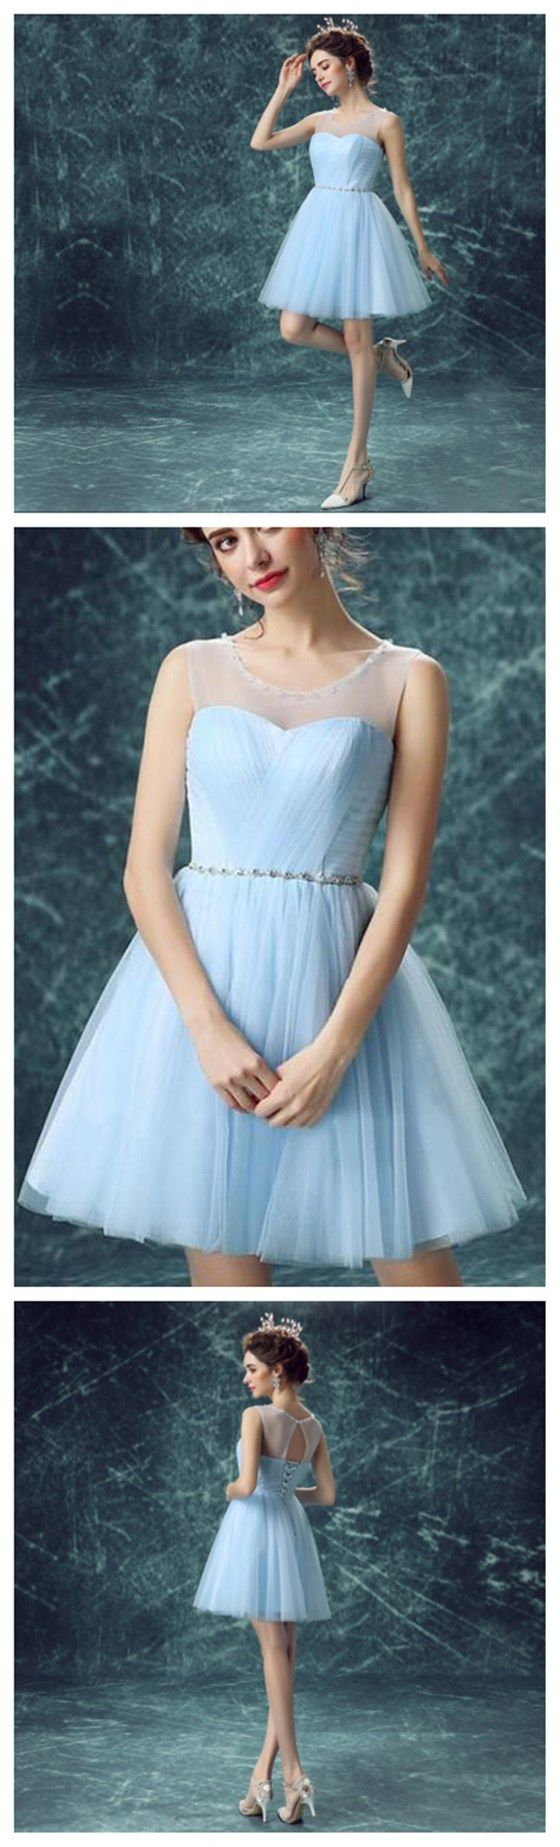 best homecoming dress images on pinterest homecoming dresses